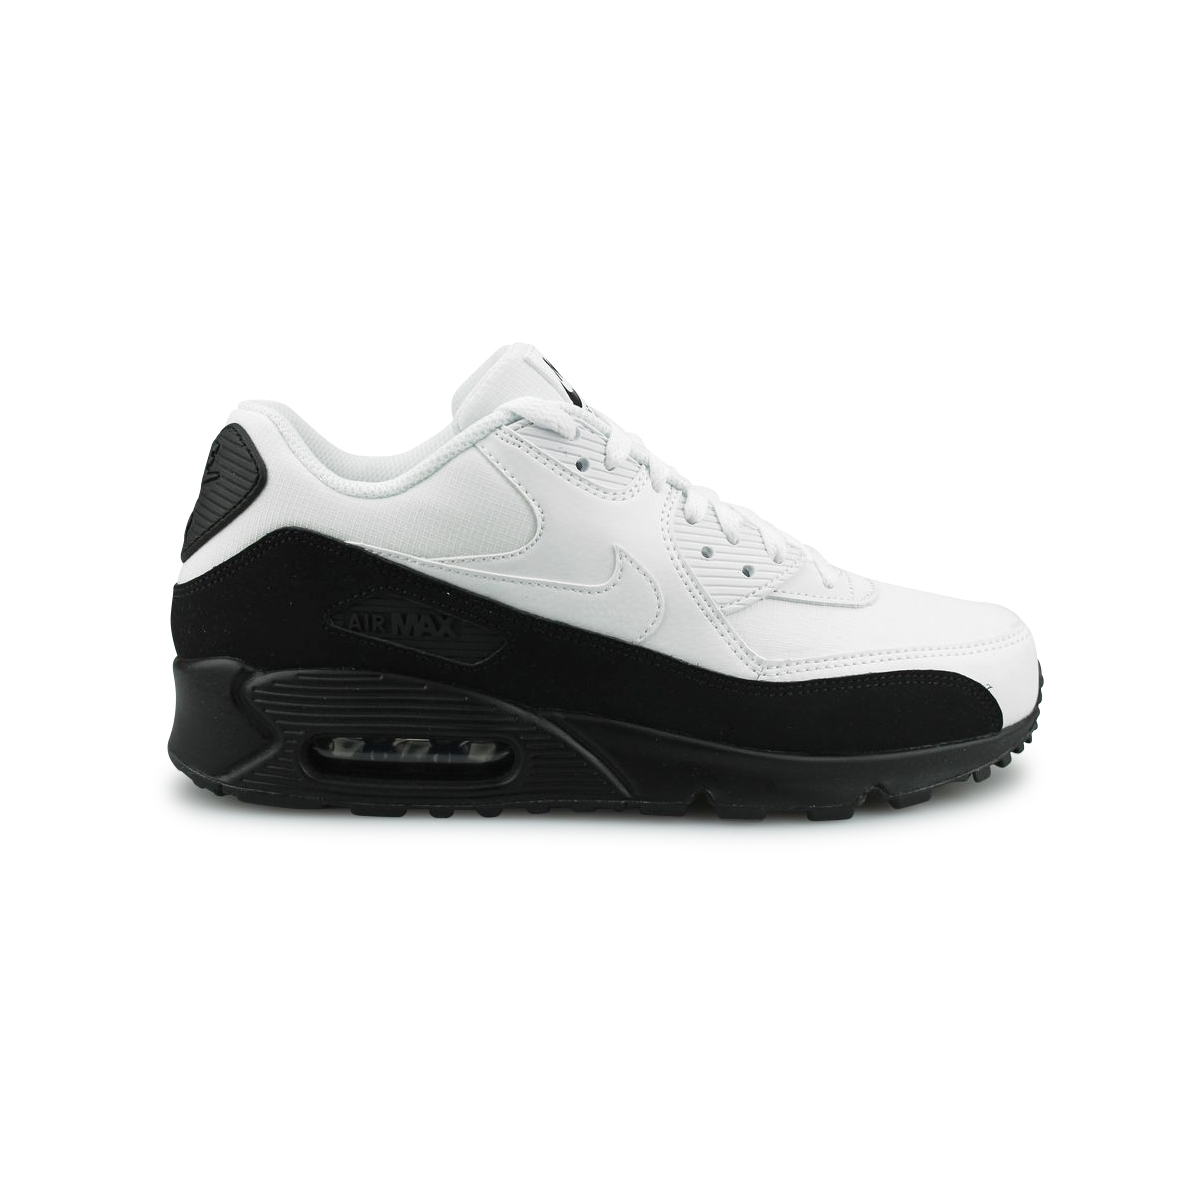 designer fashion 320d7 d94d7 NIKE AIR MAX 90 ESSENTIAL NOIR AJ1285-006